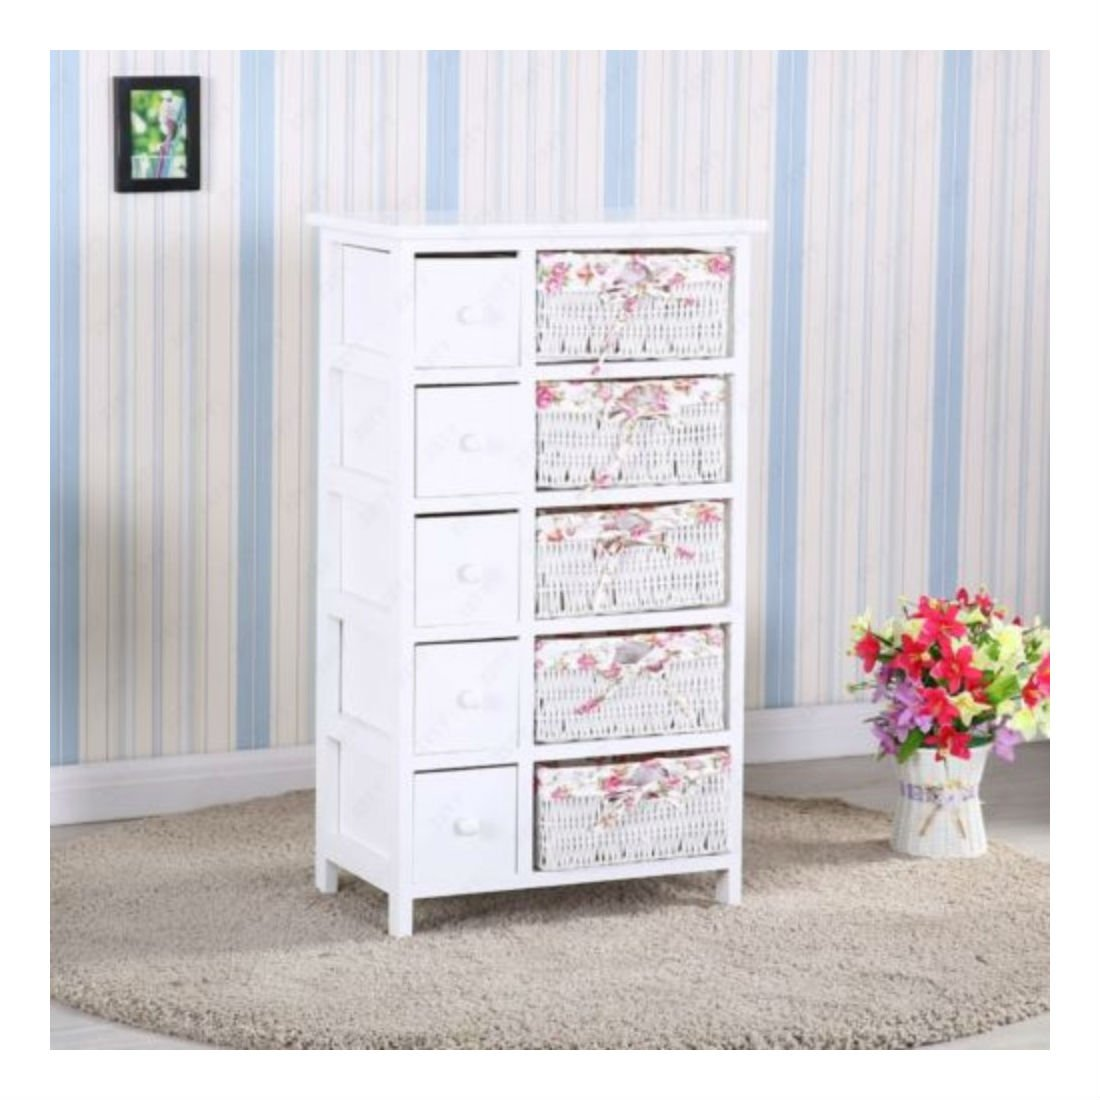 White Rustic Chest Of Drawers Wooden Storages Wicker